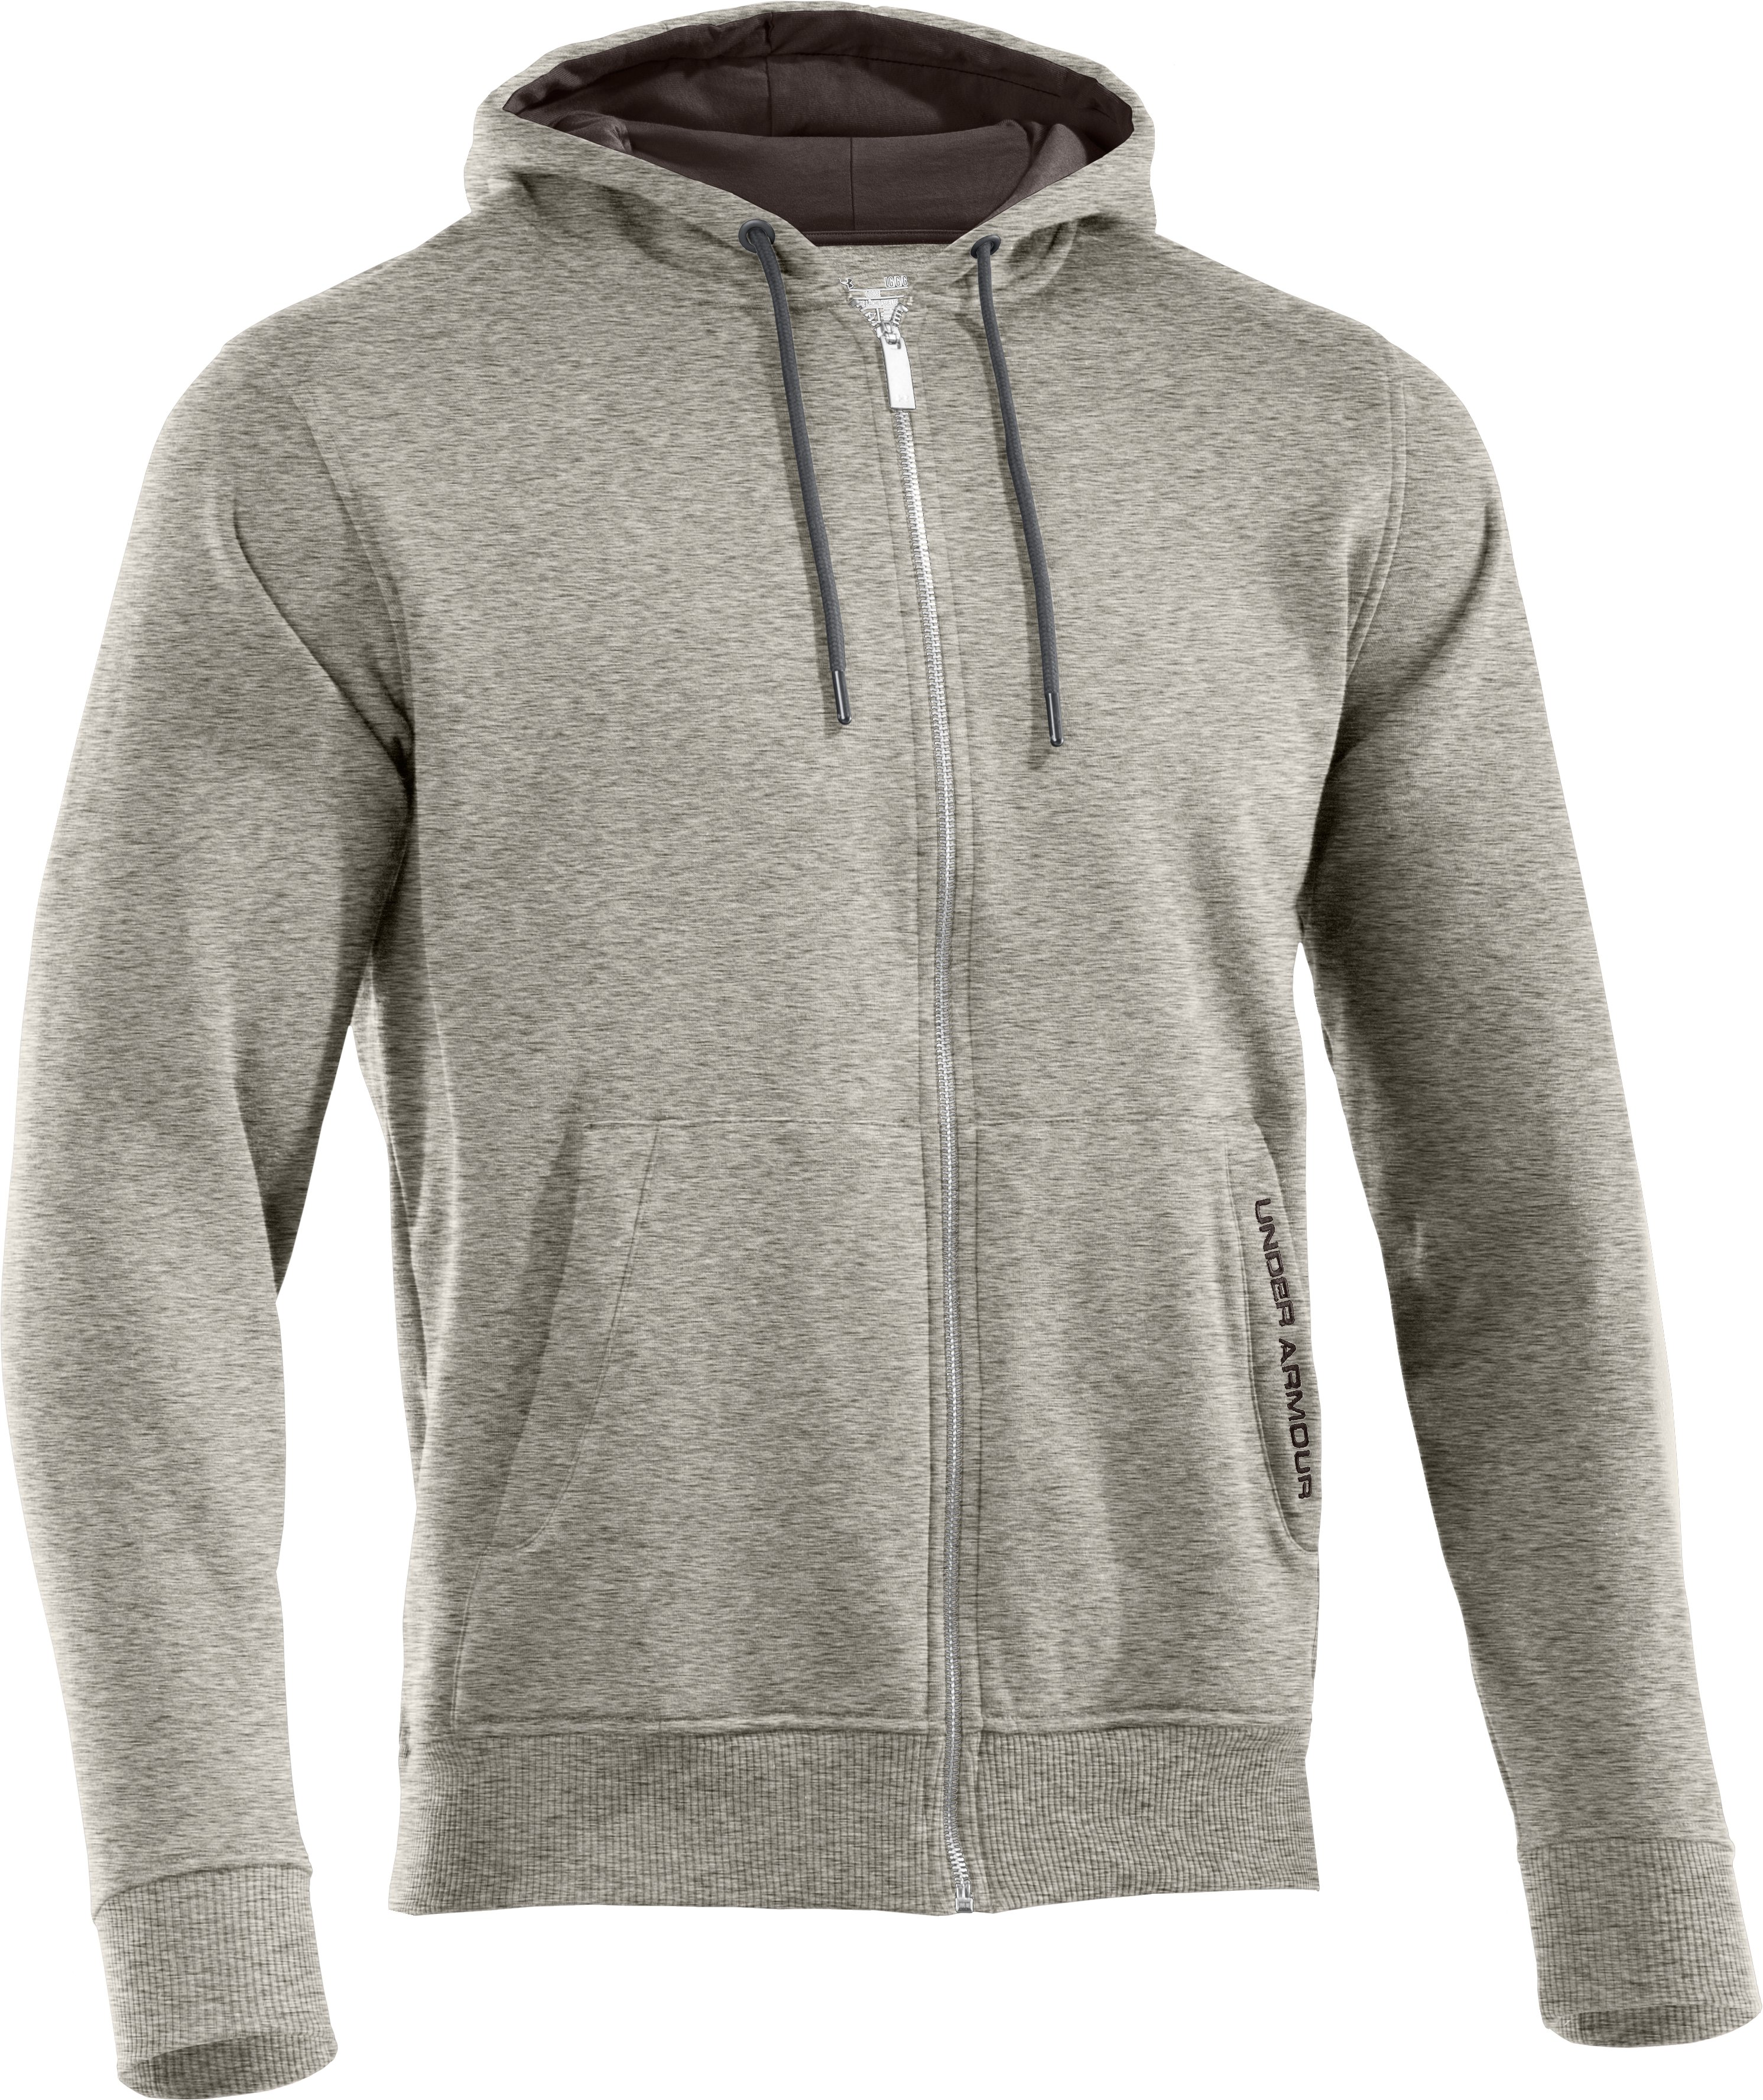 Men's Charged Cotton® Storm Full Zip Hoodie, Oatmeal Heather